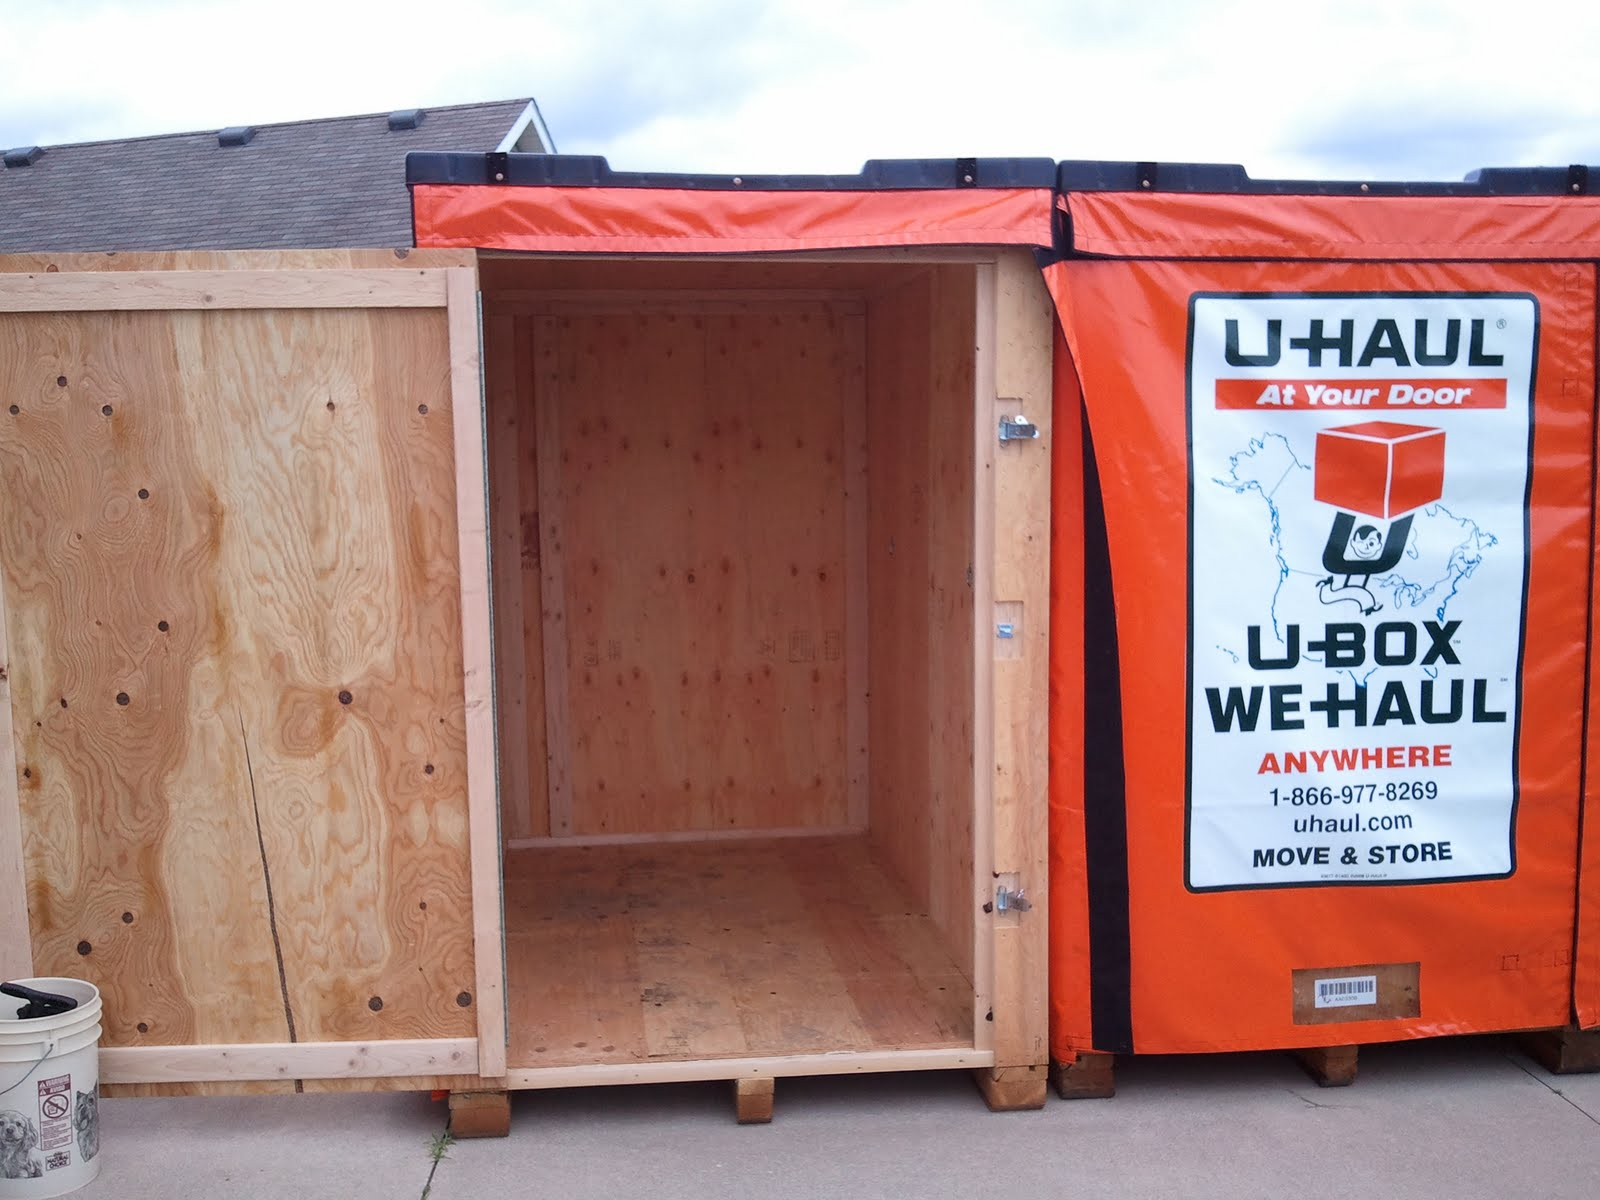 The Portable Storage Review: U-Haul U-Box Dimensions